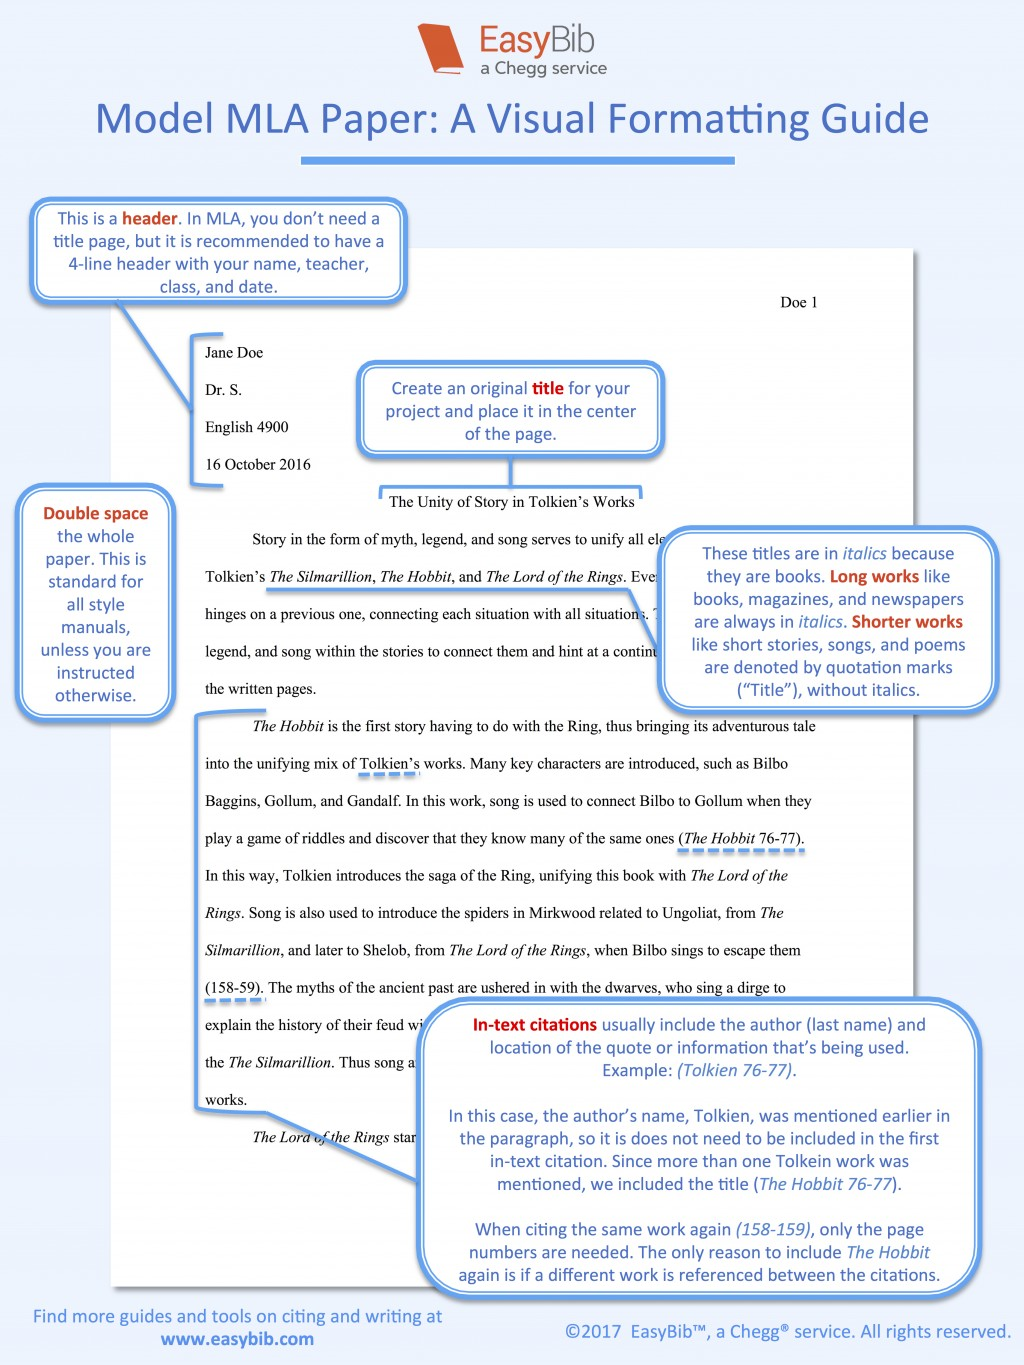 011 Model Mla Paper Research Remarkable Cite Harvard Citing Another Apa Properly Sources Large